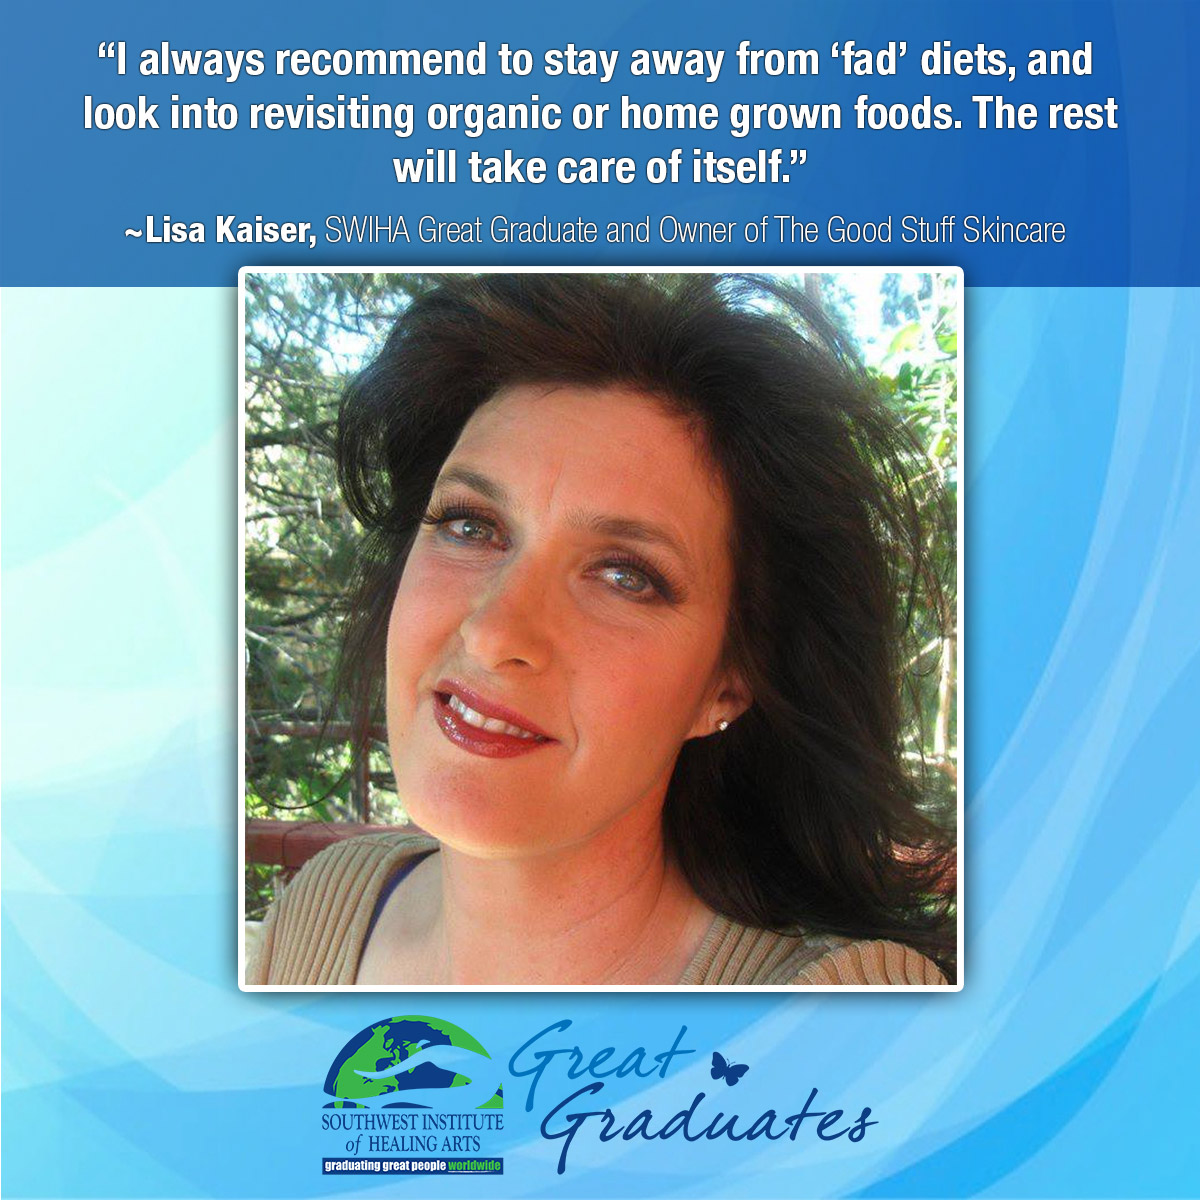 Lisa-Kaiser-Holistic Nutrition - Southwest Institute of Healing Arts